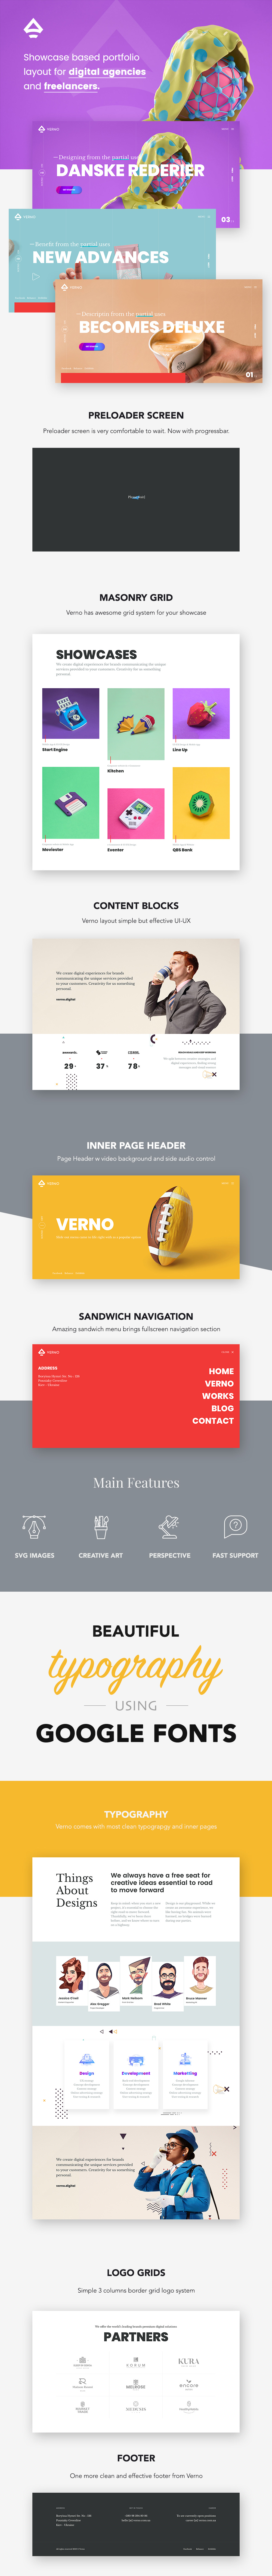 Verno | Creative Showcases for Agencies Theme - 1